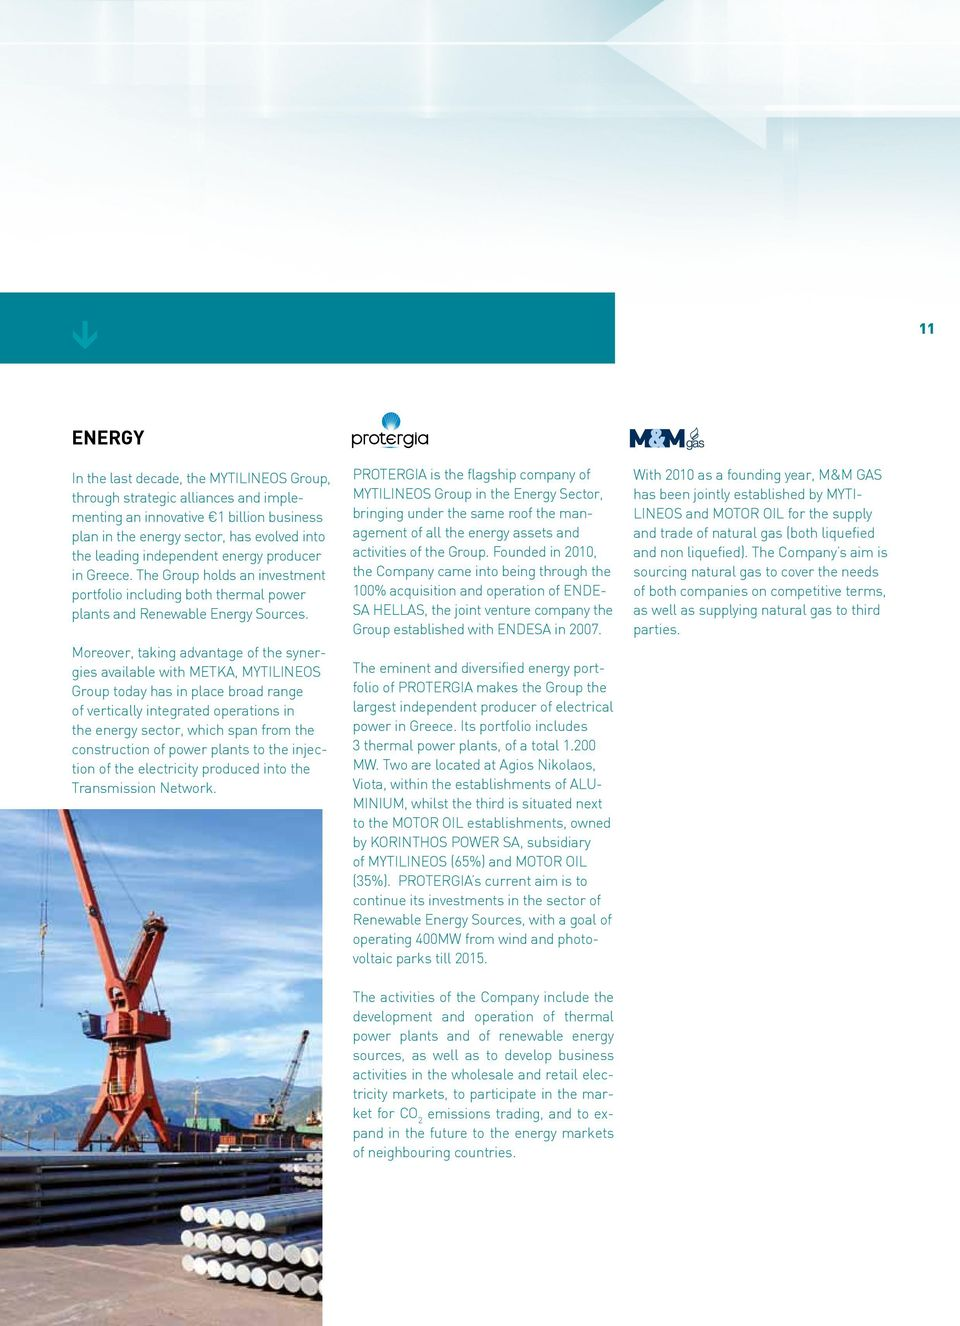 Moreover, taking advantage of the synergies available with METKA, MYTILINEOS Group today has in place broad range of vertically integrated operations in the energy sector, which span from the